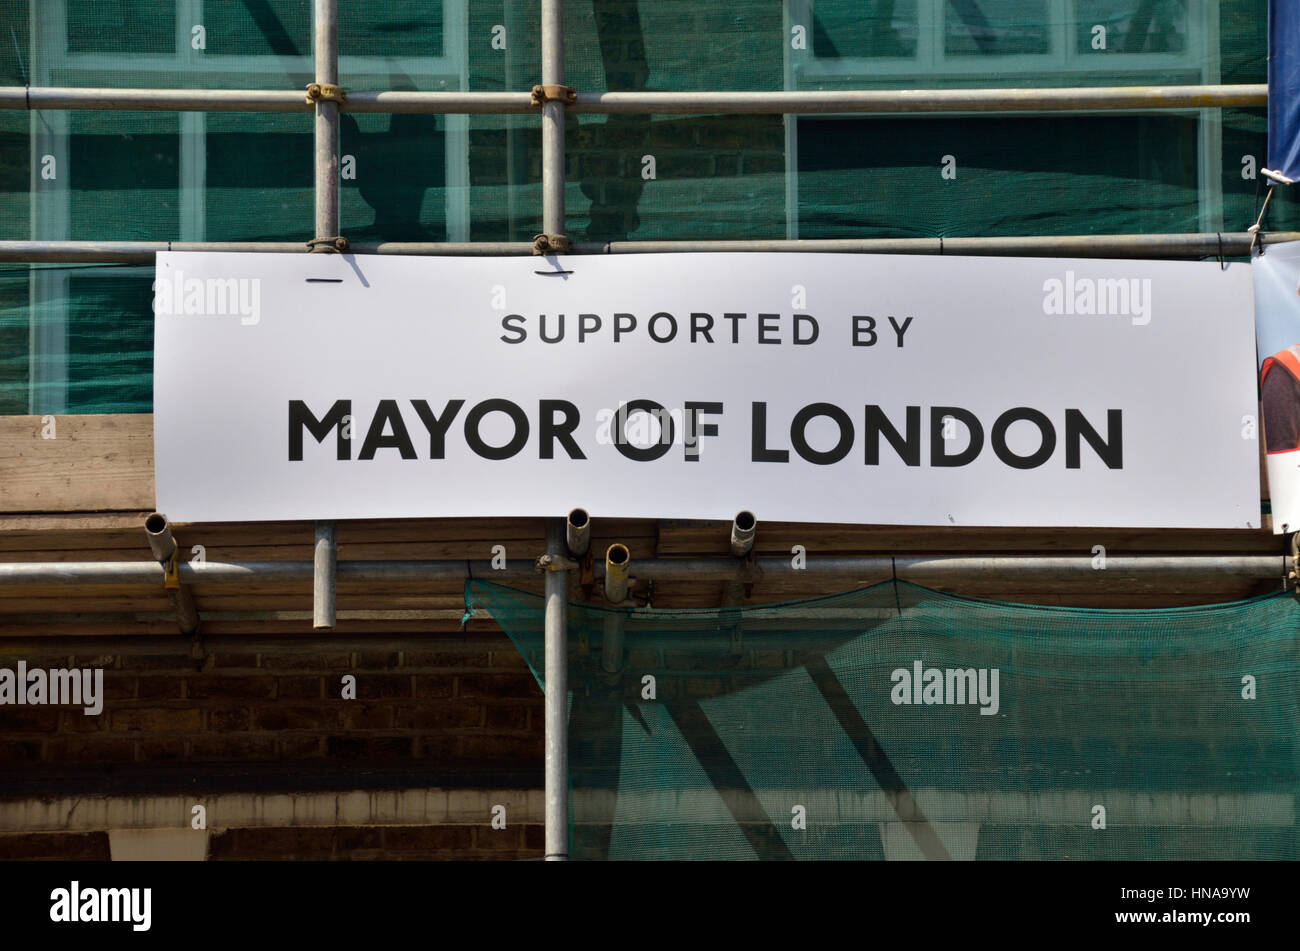 'Supported by Mayor of London' sign on a building, London, UK. - Stock Image